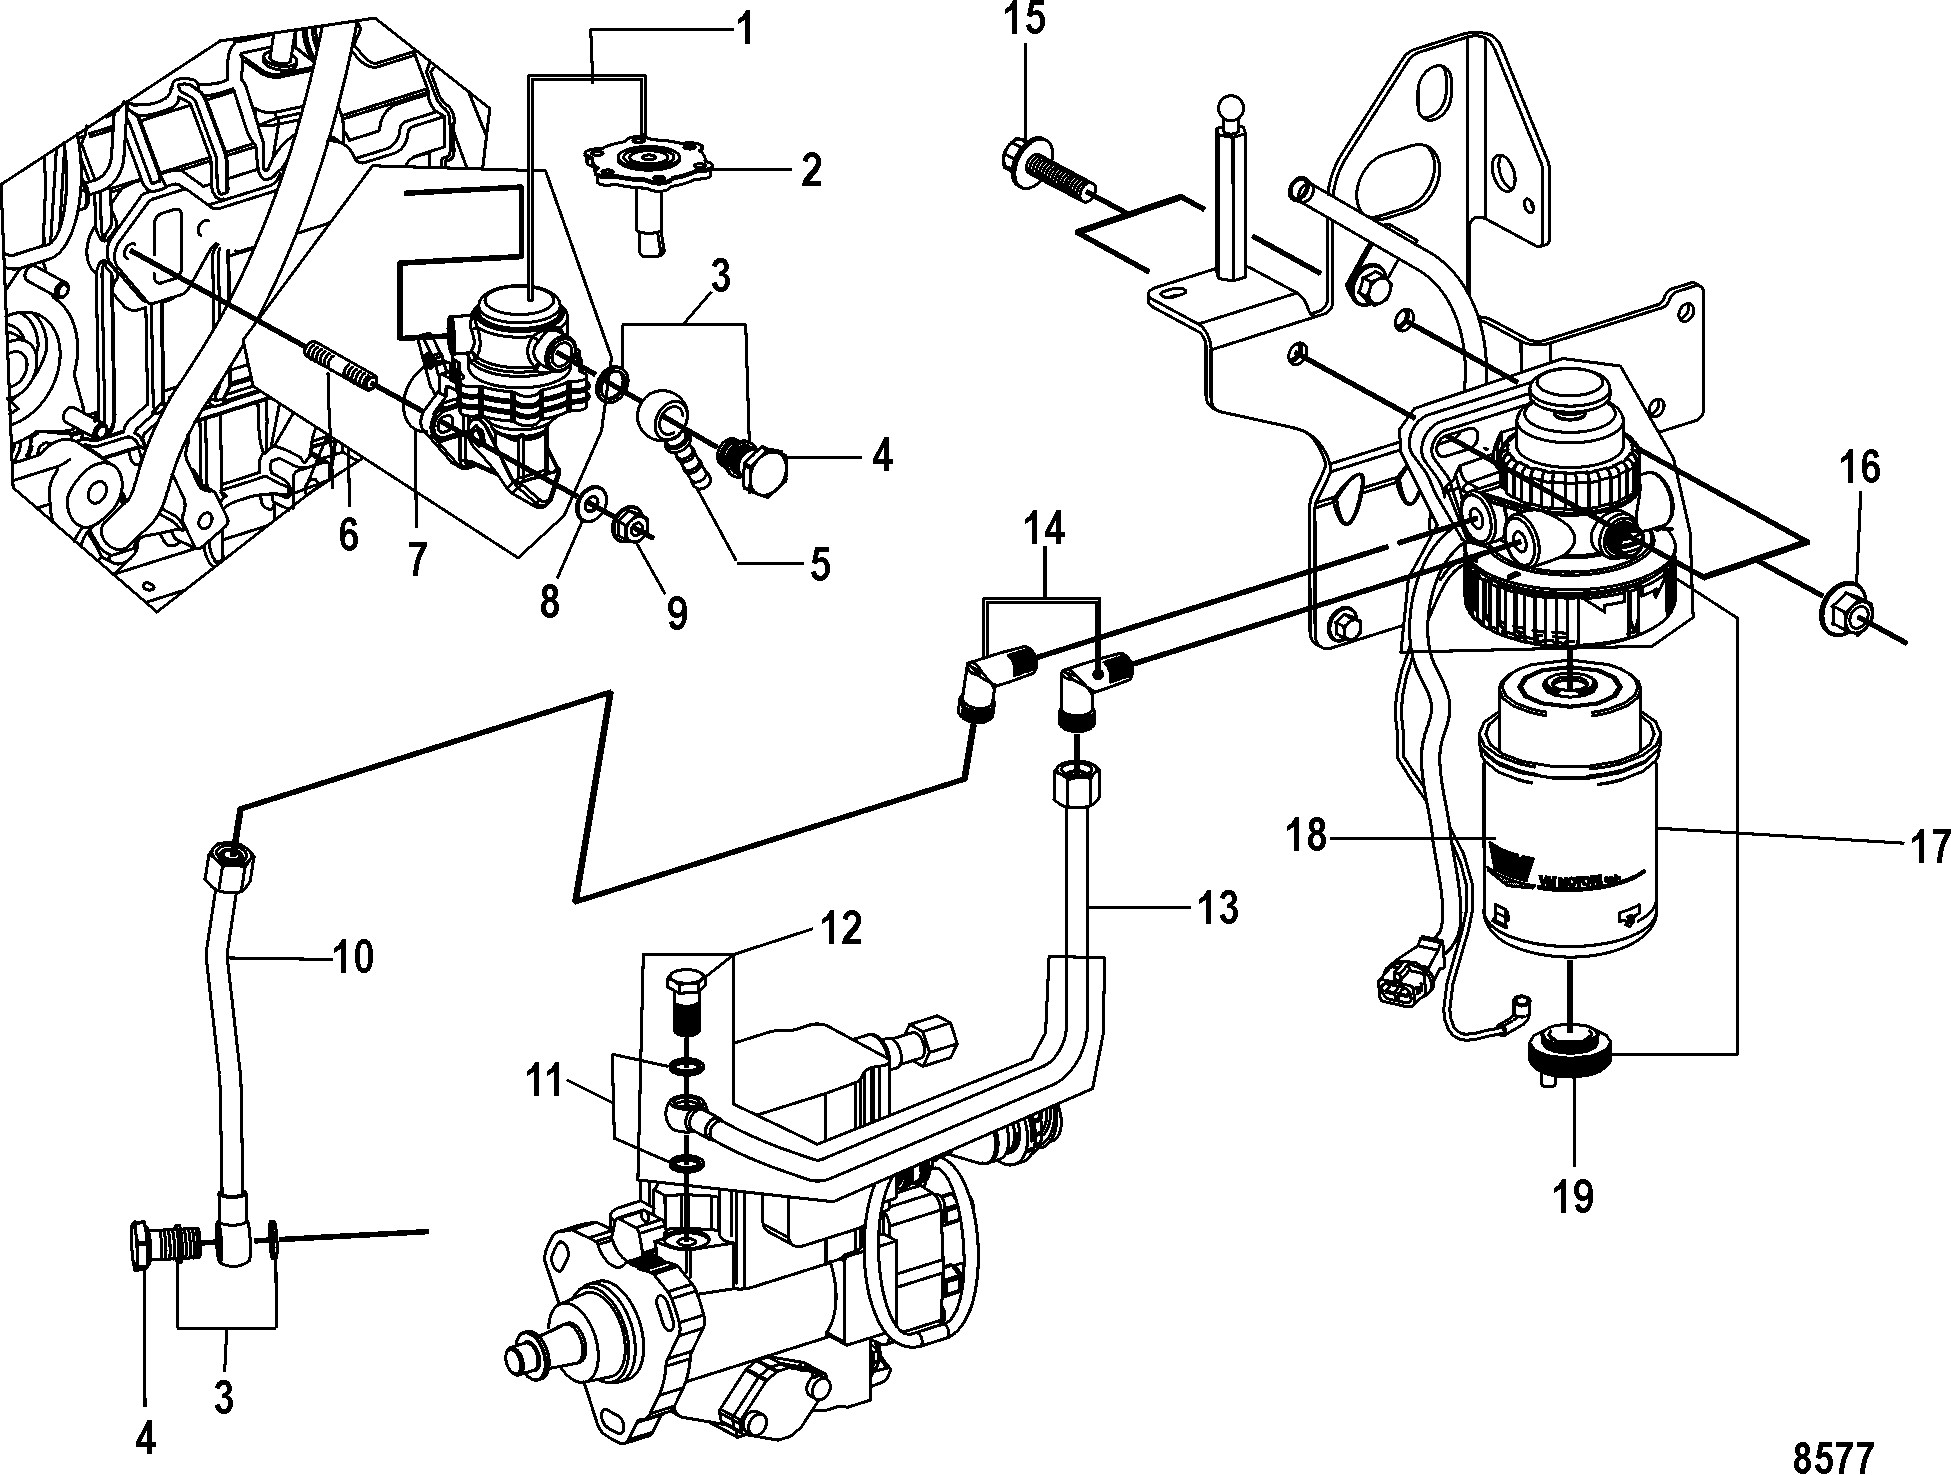 3 liter mercruiser engine diagram starter motor for mercruiser 7 4l bravo i ii iii engine  u2013 my